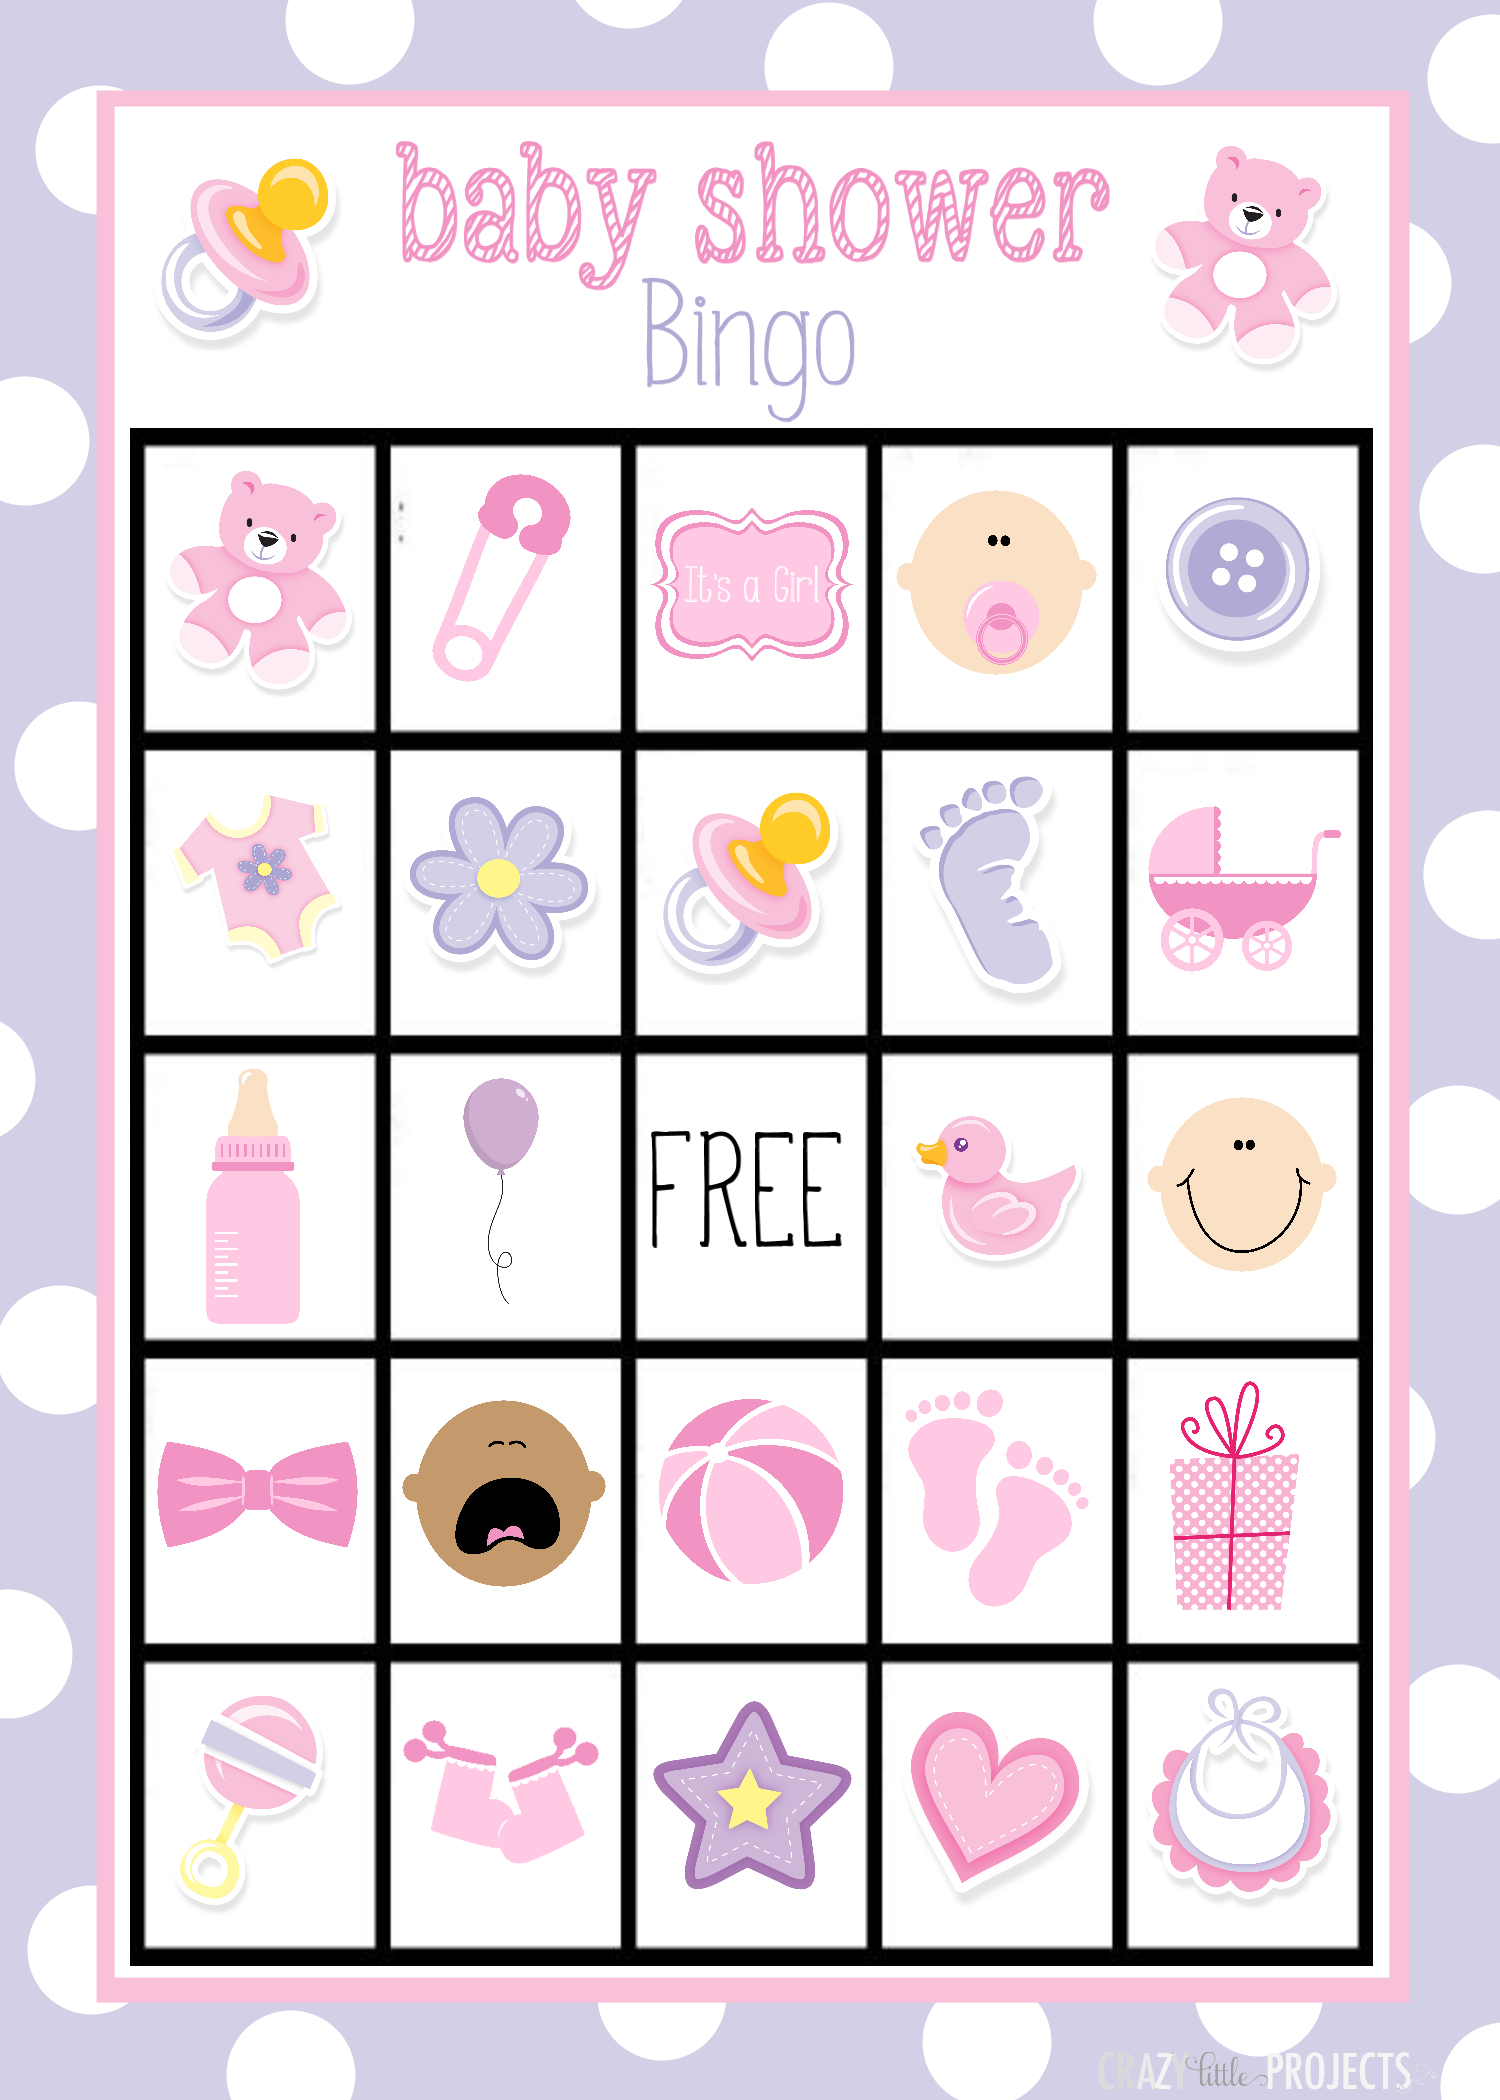 Baby Shower Bingo Cards | Baby Shower Ideas | Pinterest | Valentines - Baby Bingo Game Free Printable